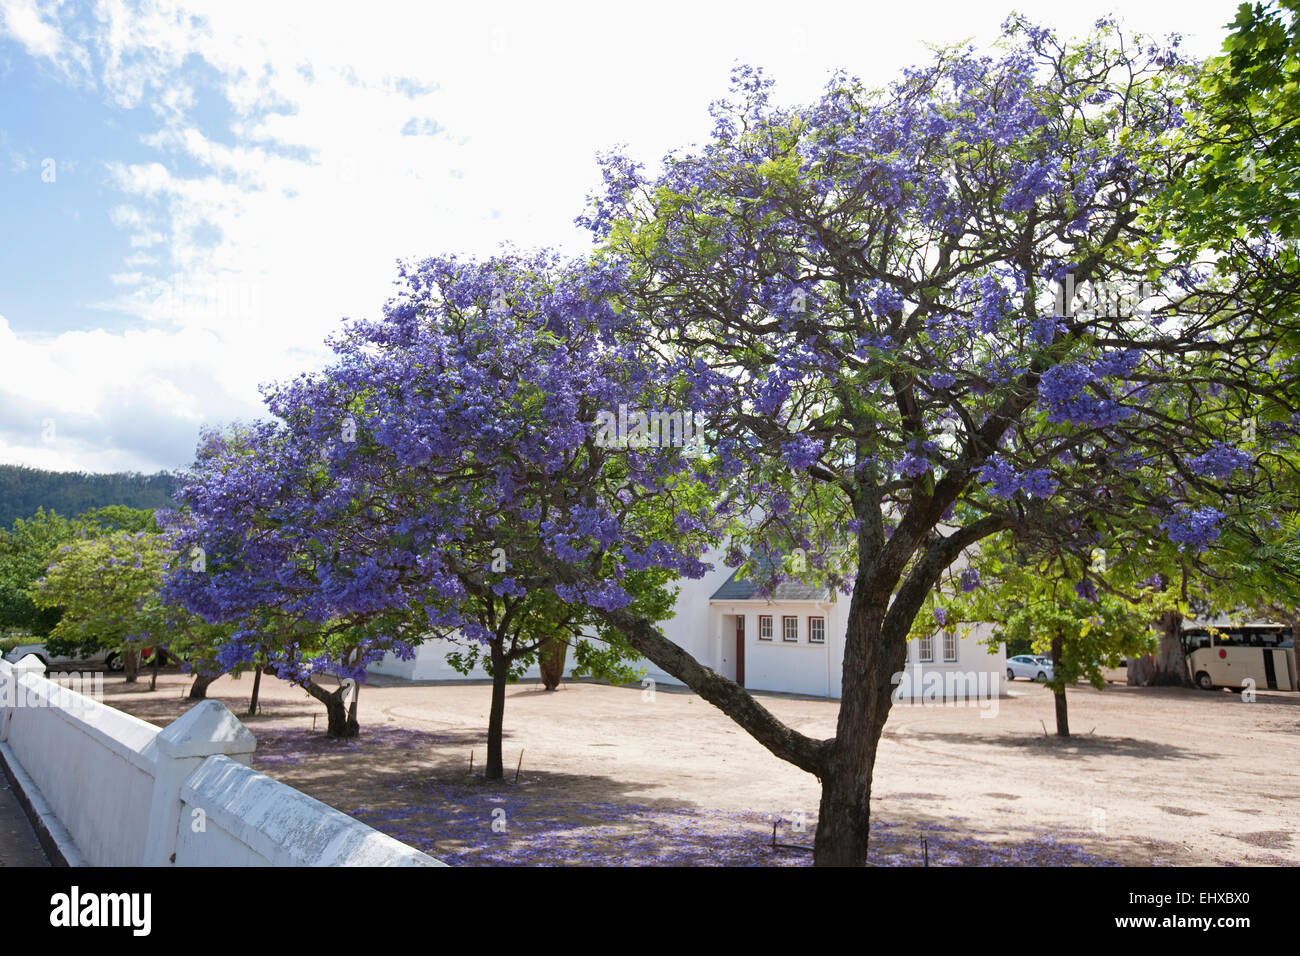 Purple budding flowers on blue jacaranda jacaranda mimosifolia purple budding flowers on blue jacaranda jacaranda mimosifolia trees franschhoek south africa izmirmasajfo